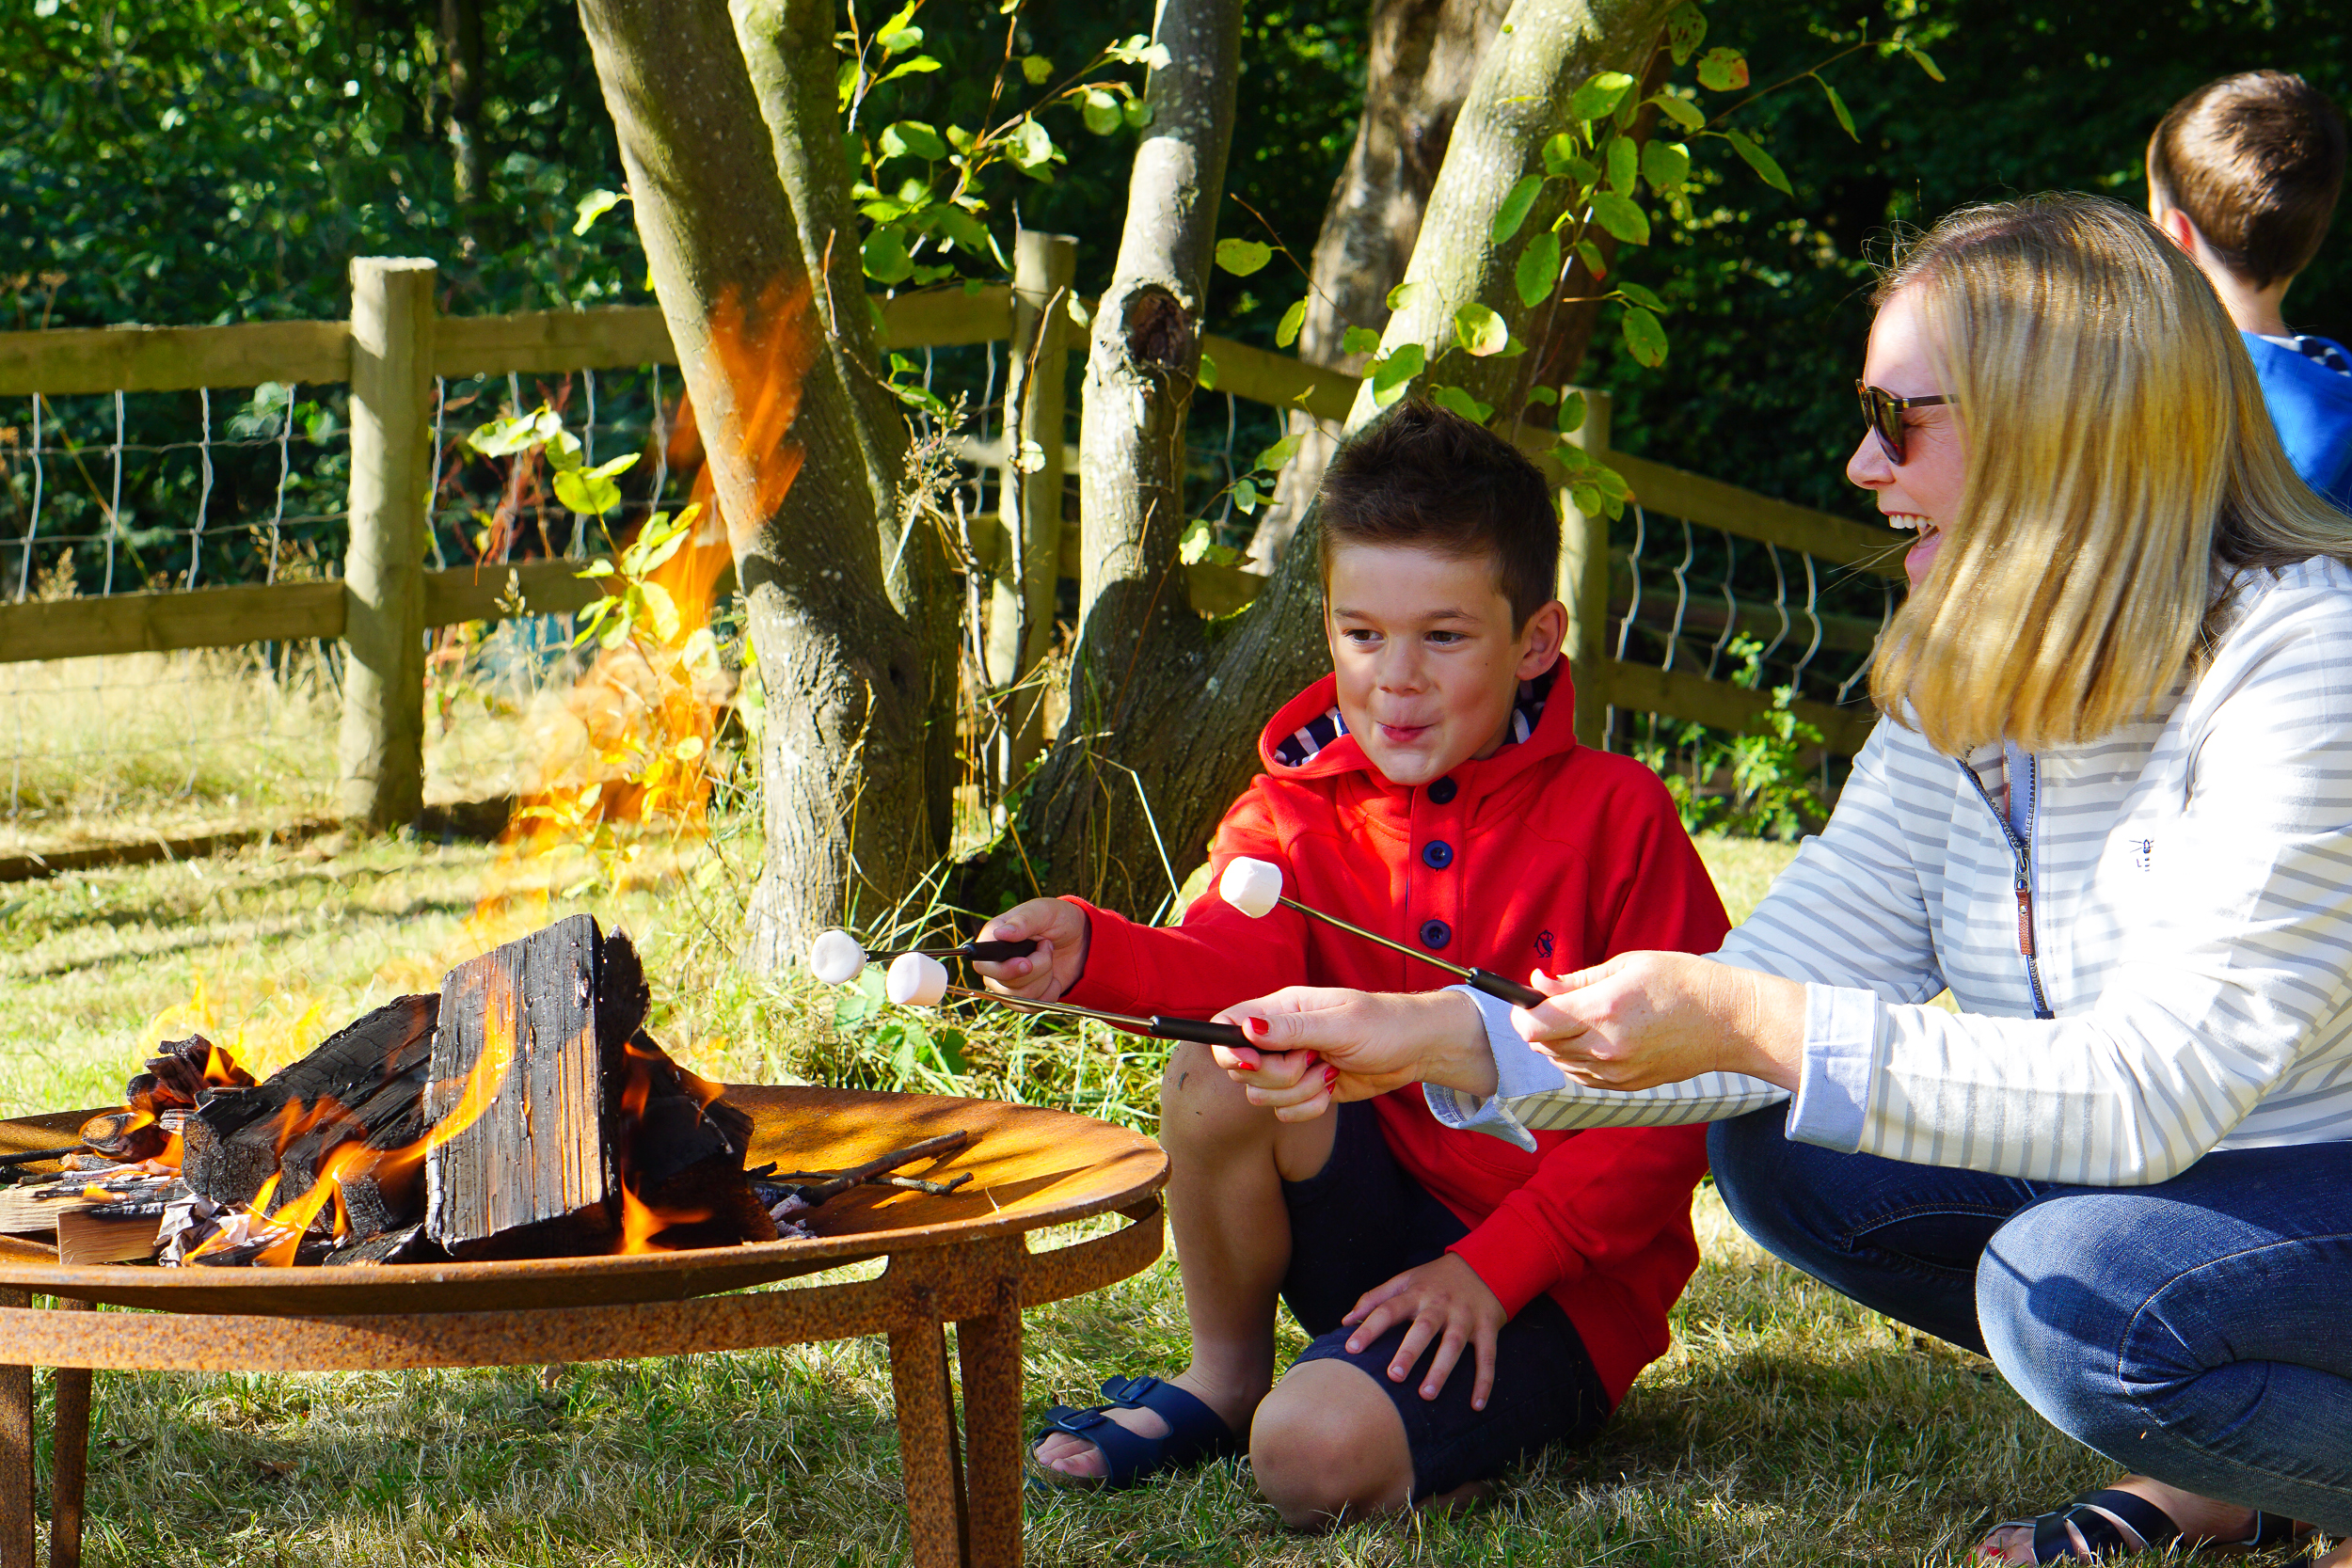 A stay at home summer jam-packed with juggling